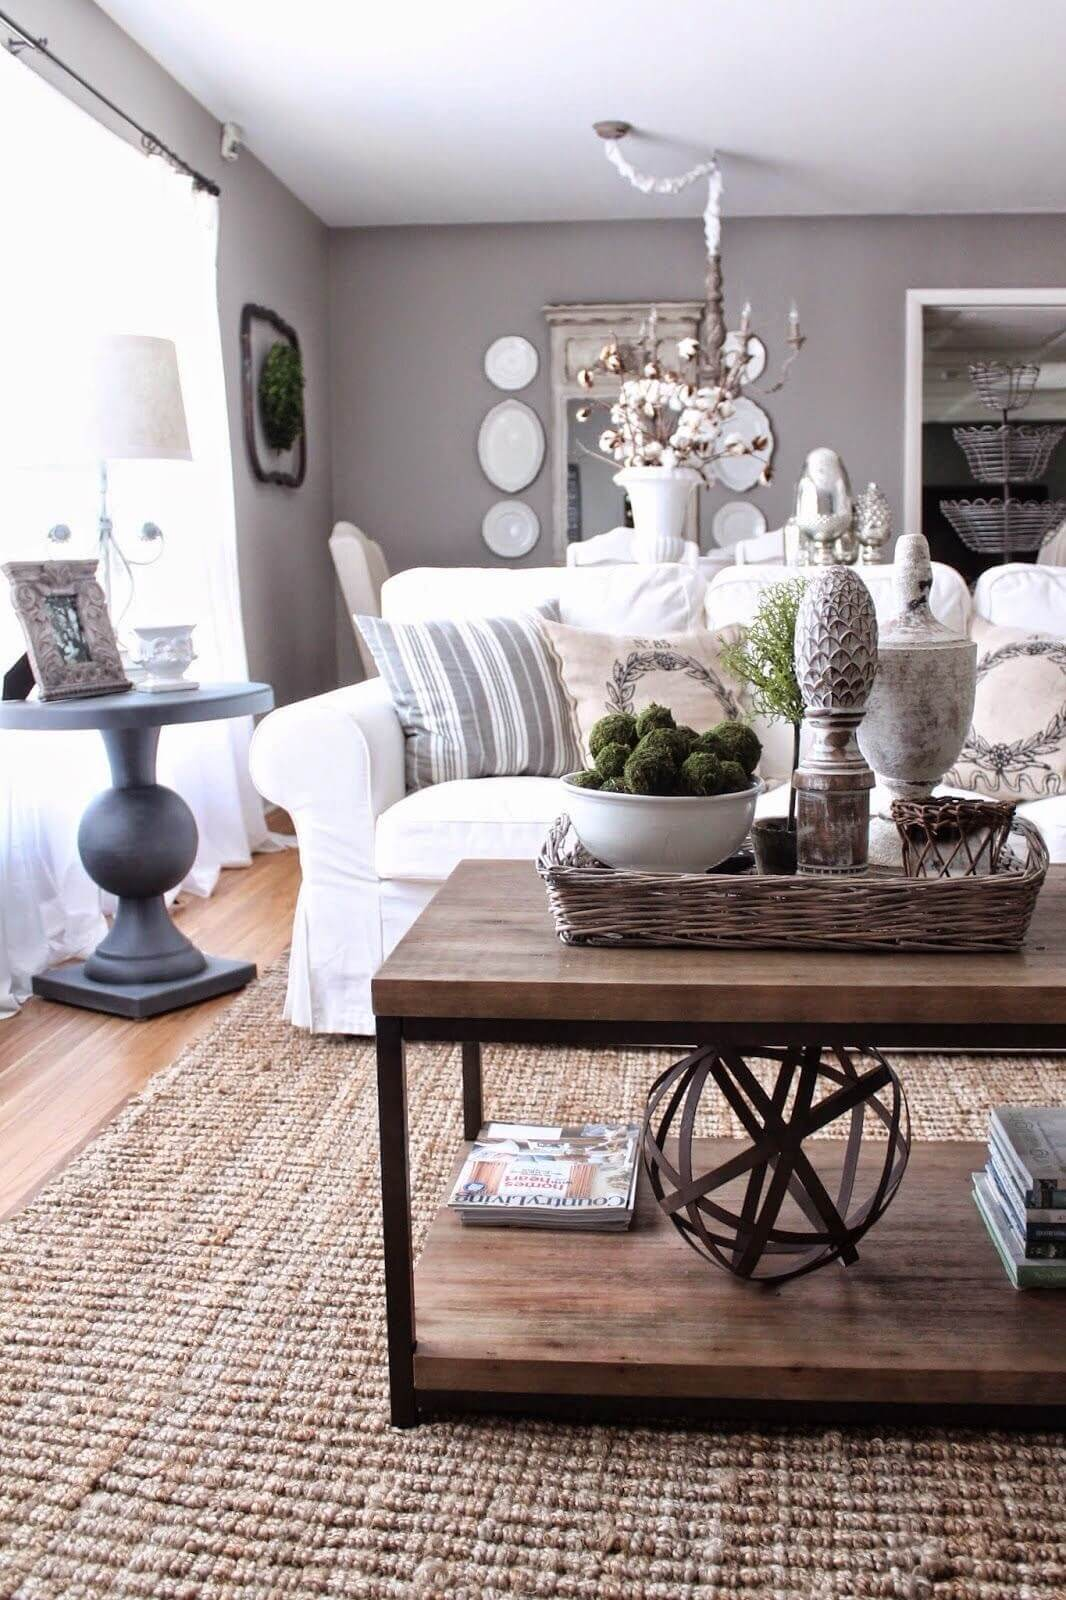 decoration ideas for living room table furniture bay area 37 best coffee decorating and designs 2019 double decker display of geometric art natural accents